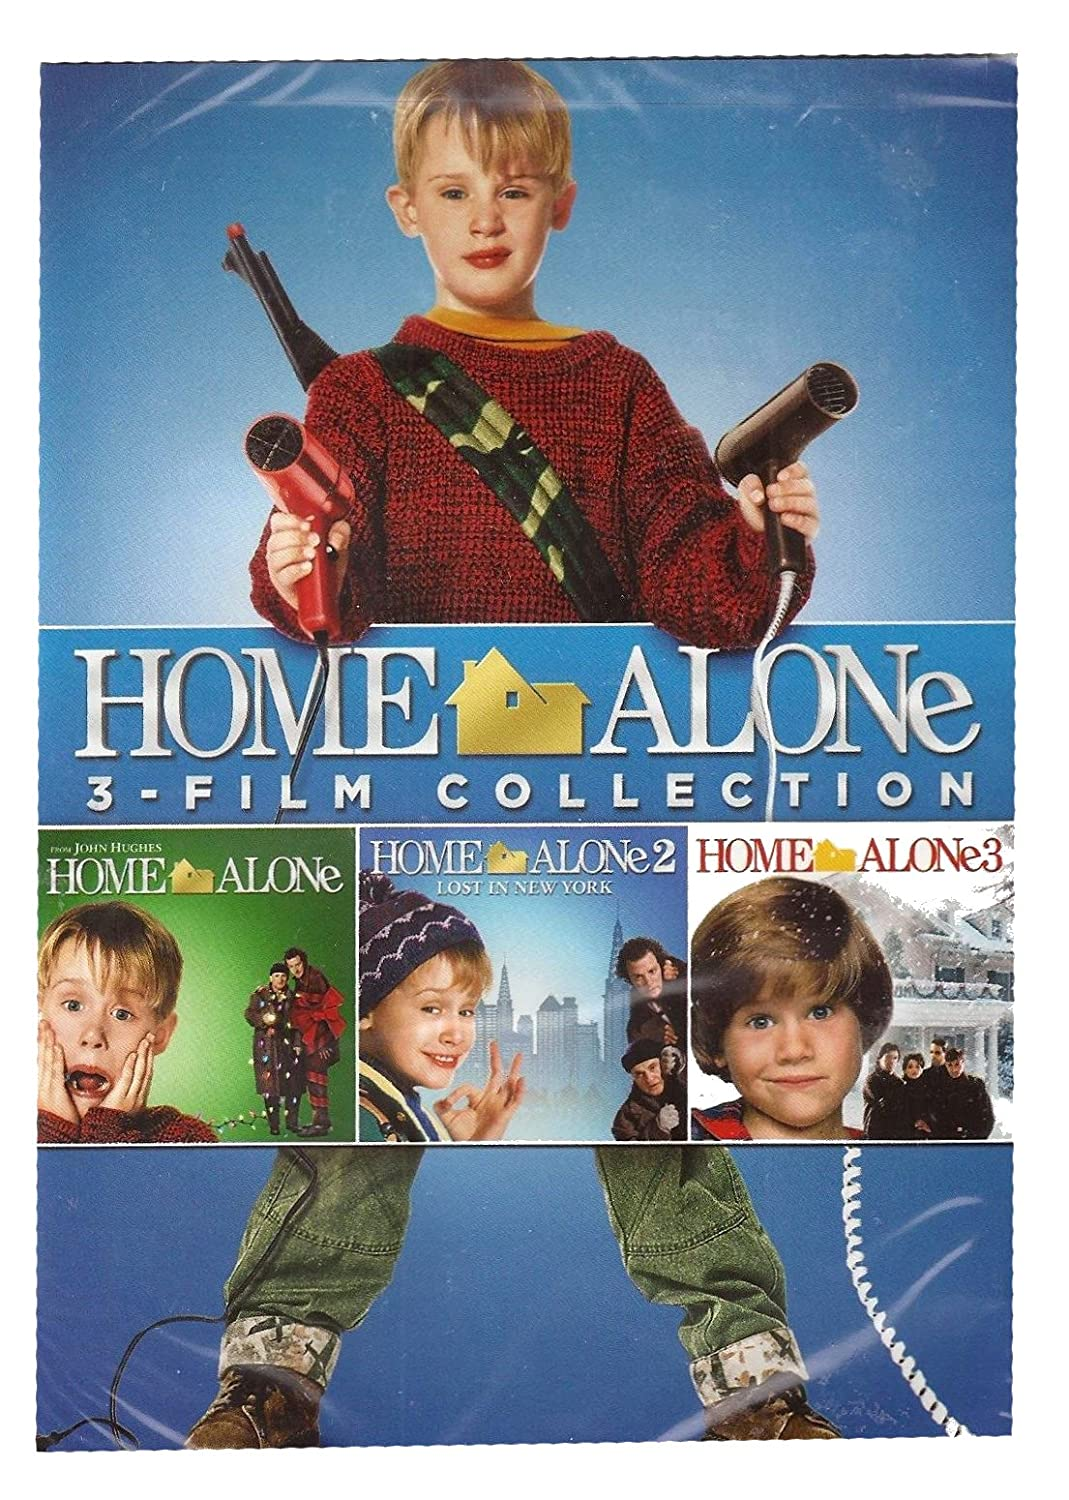 Home Alone 3-Film Collection (Home Alone/Home Alone 2: Lost in New York/Home Alone 3) DVD